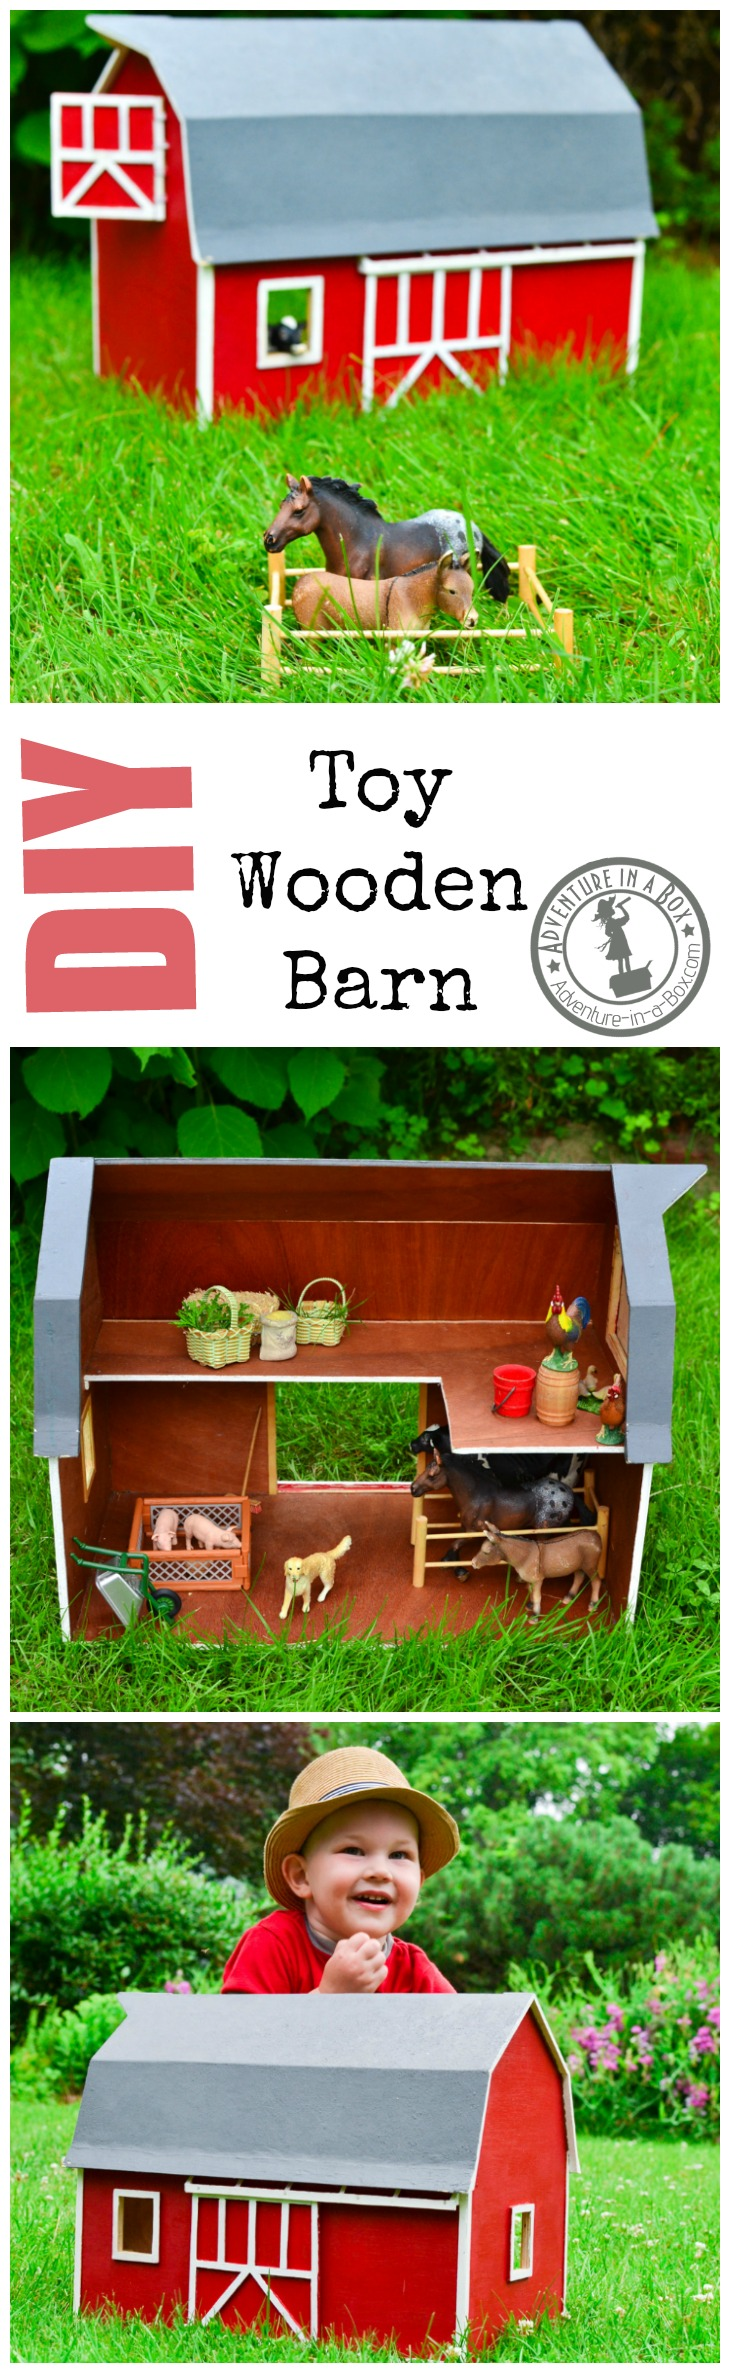 Handmade Toy Wooden Barn: a DIY project that has the potential to become a family heirloom, but will keep your kid's animals under control in the meantime.